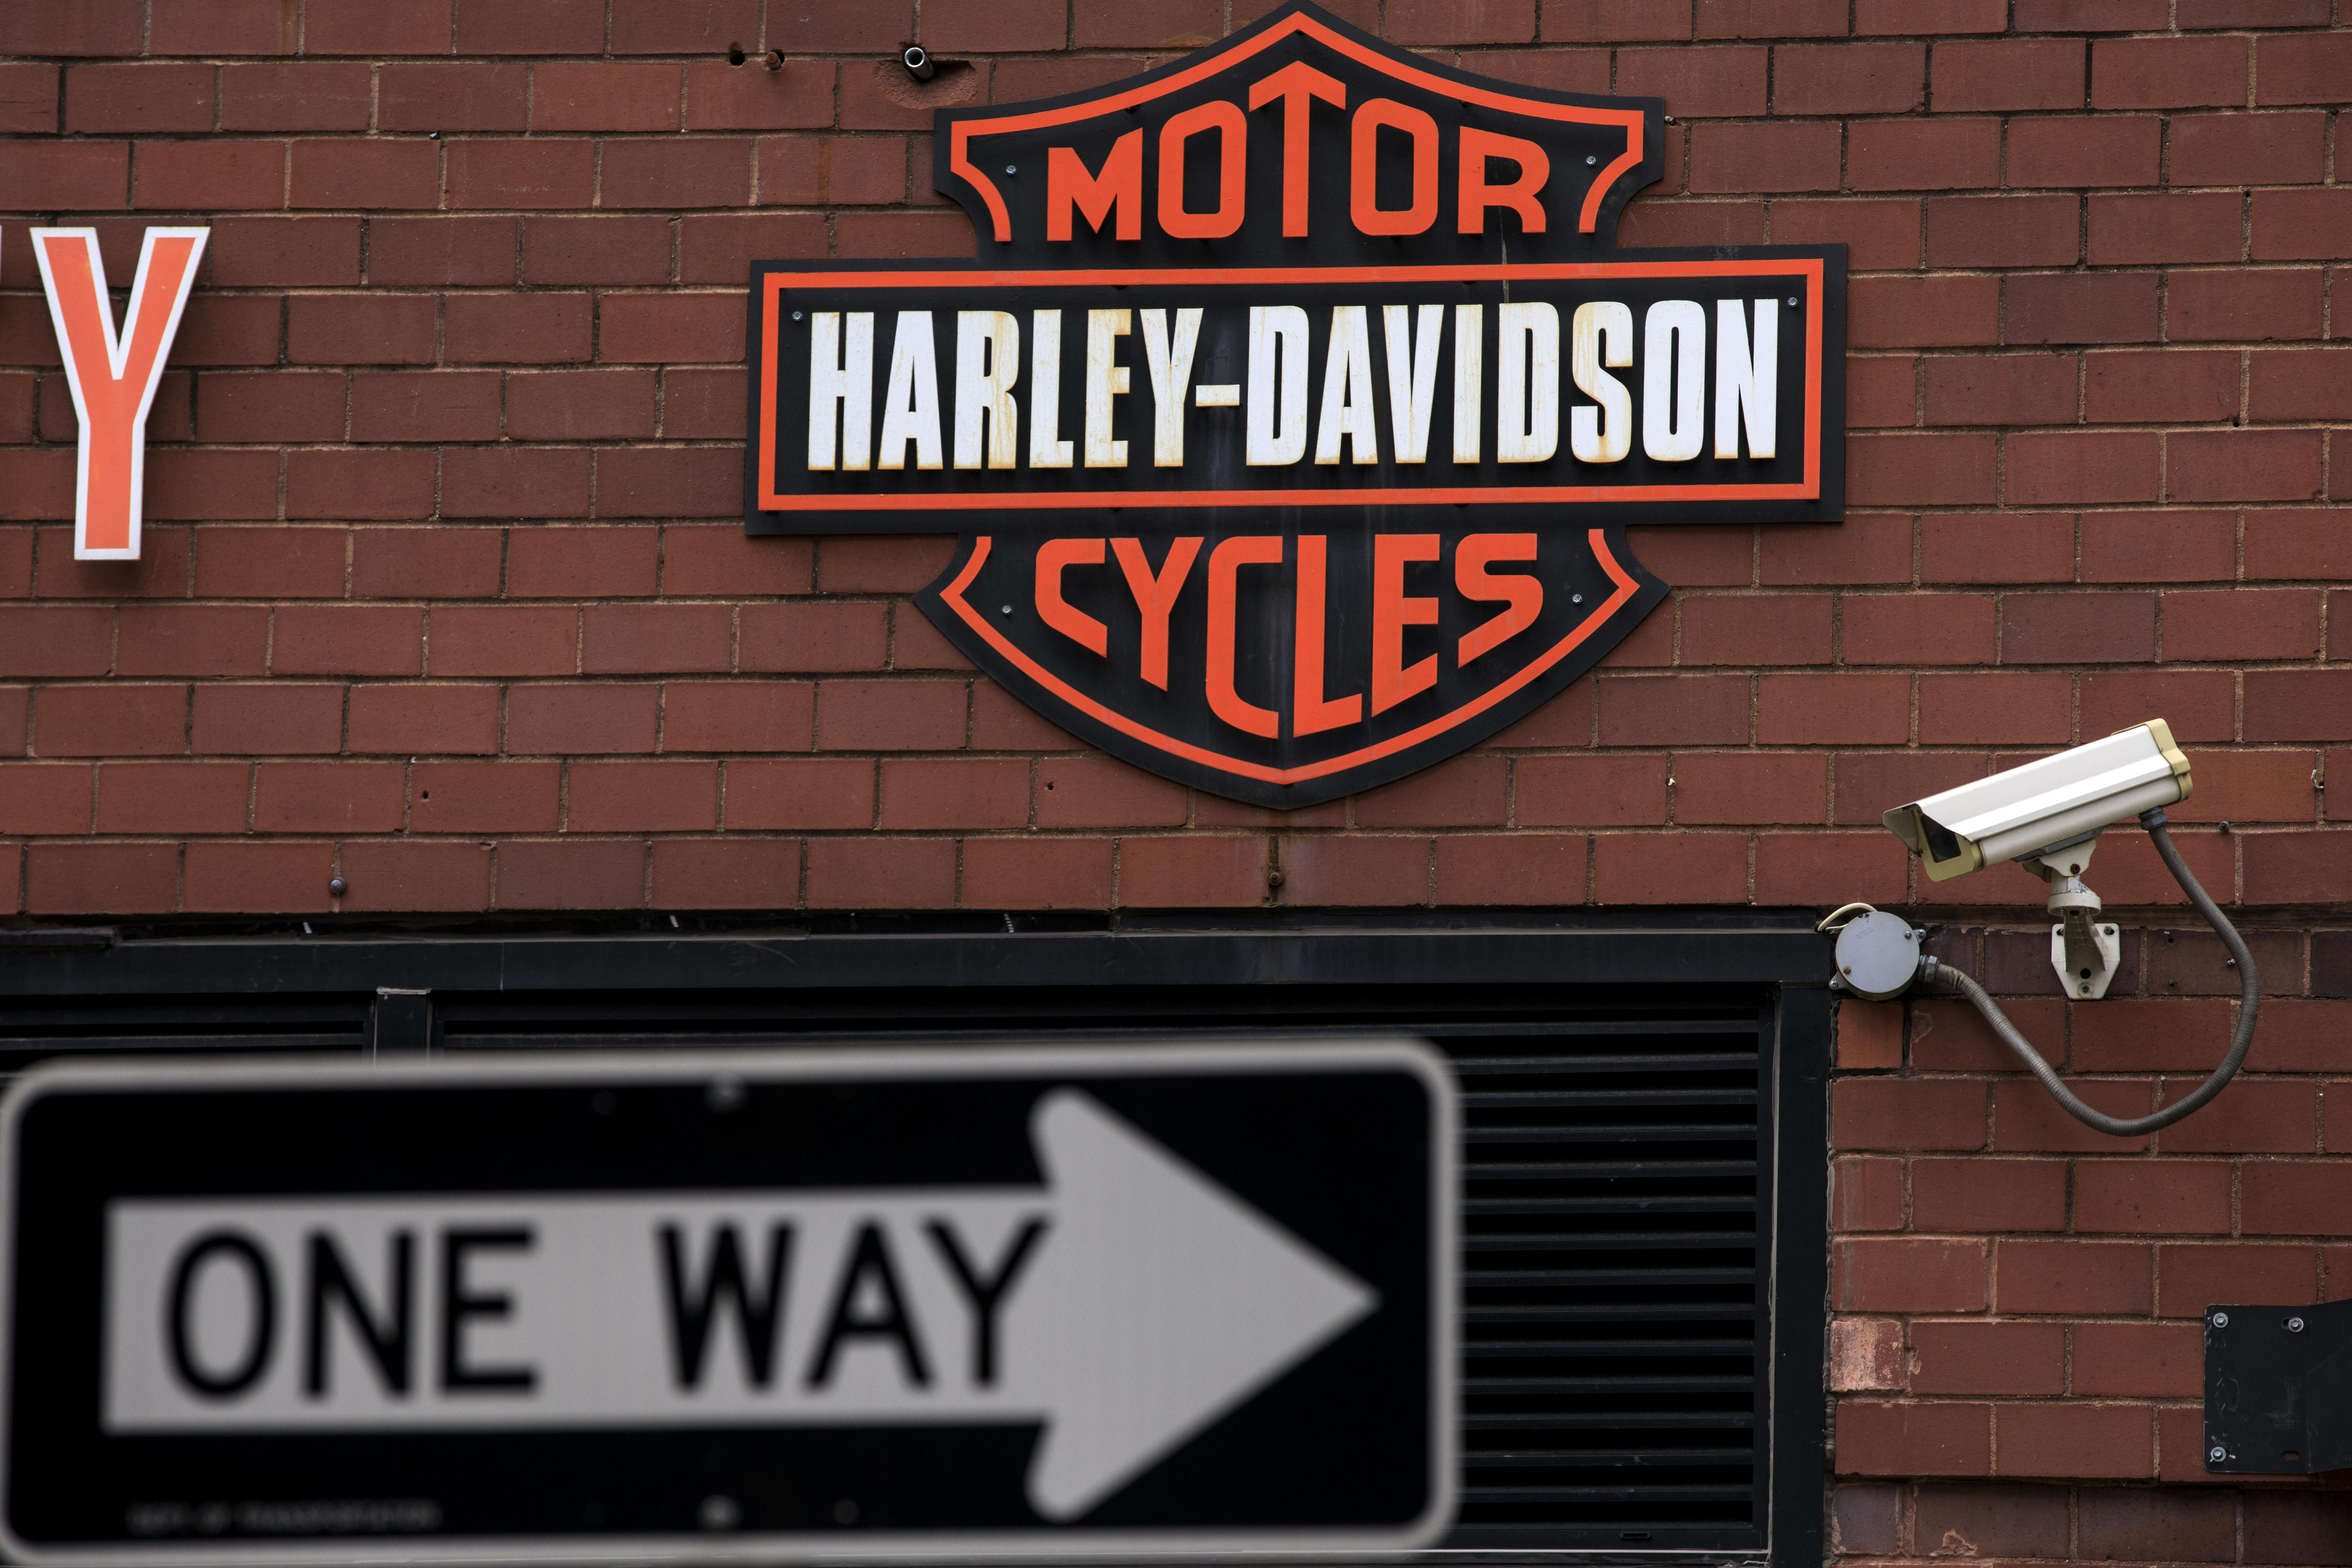 NEW YORK, NY - JUNE 25: The Harley Davidson logo is displayed on the outside of the Harley-Davidson of New York City store, June 25, 2018 in New York City. The American motorcycle company announced on Monday that it will shift production of some of its bikes overseas in order to avoid retaliatory tariffs by the European Union in response to U.S. President Donald Trump's tariffs on steel and aluminum imported from the EU. (Photo by Drew Angerer/Getty Images)